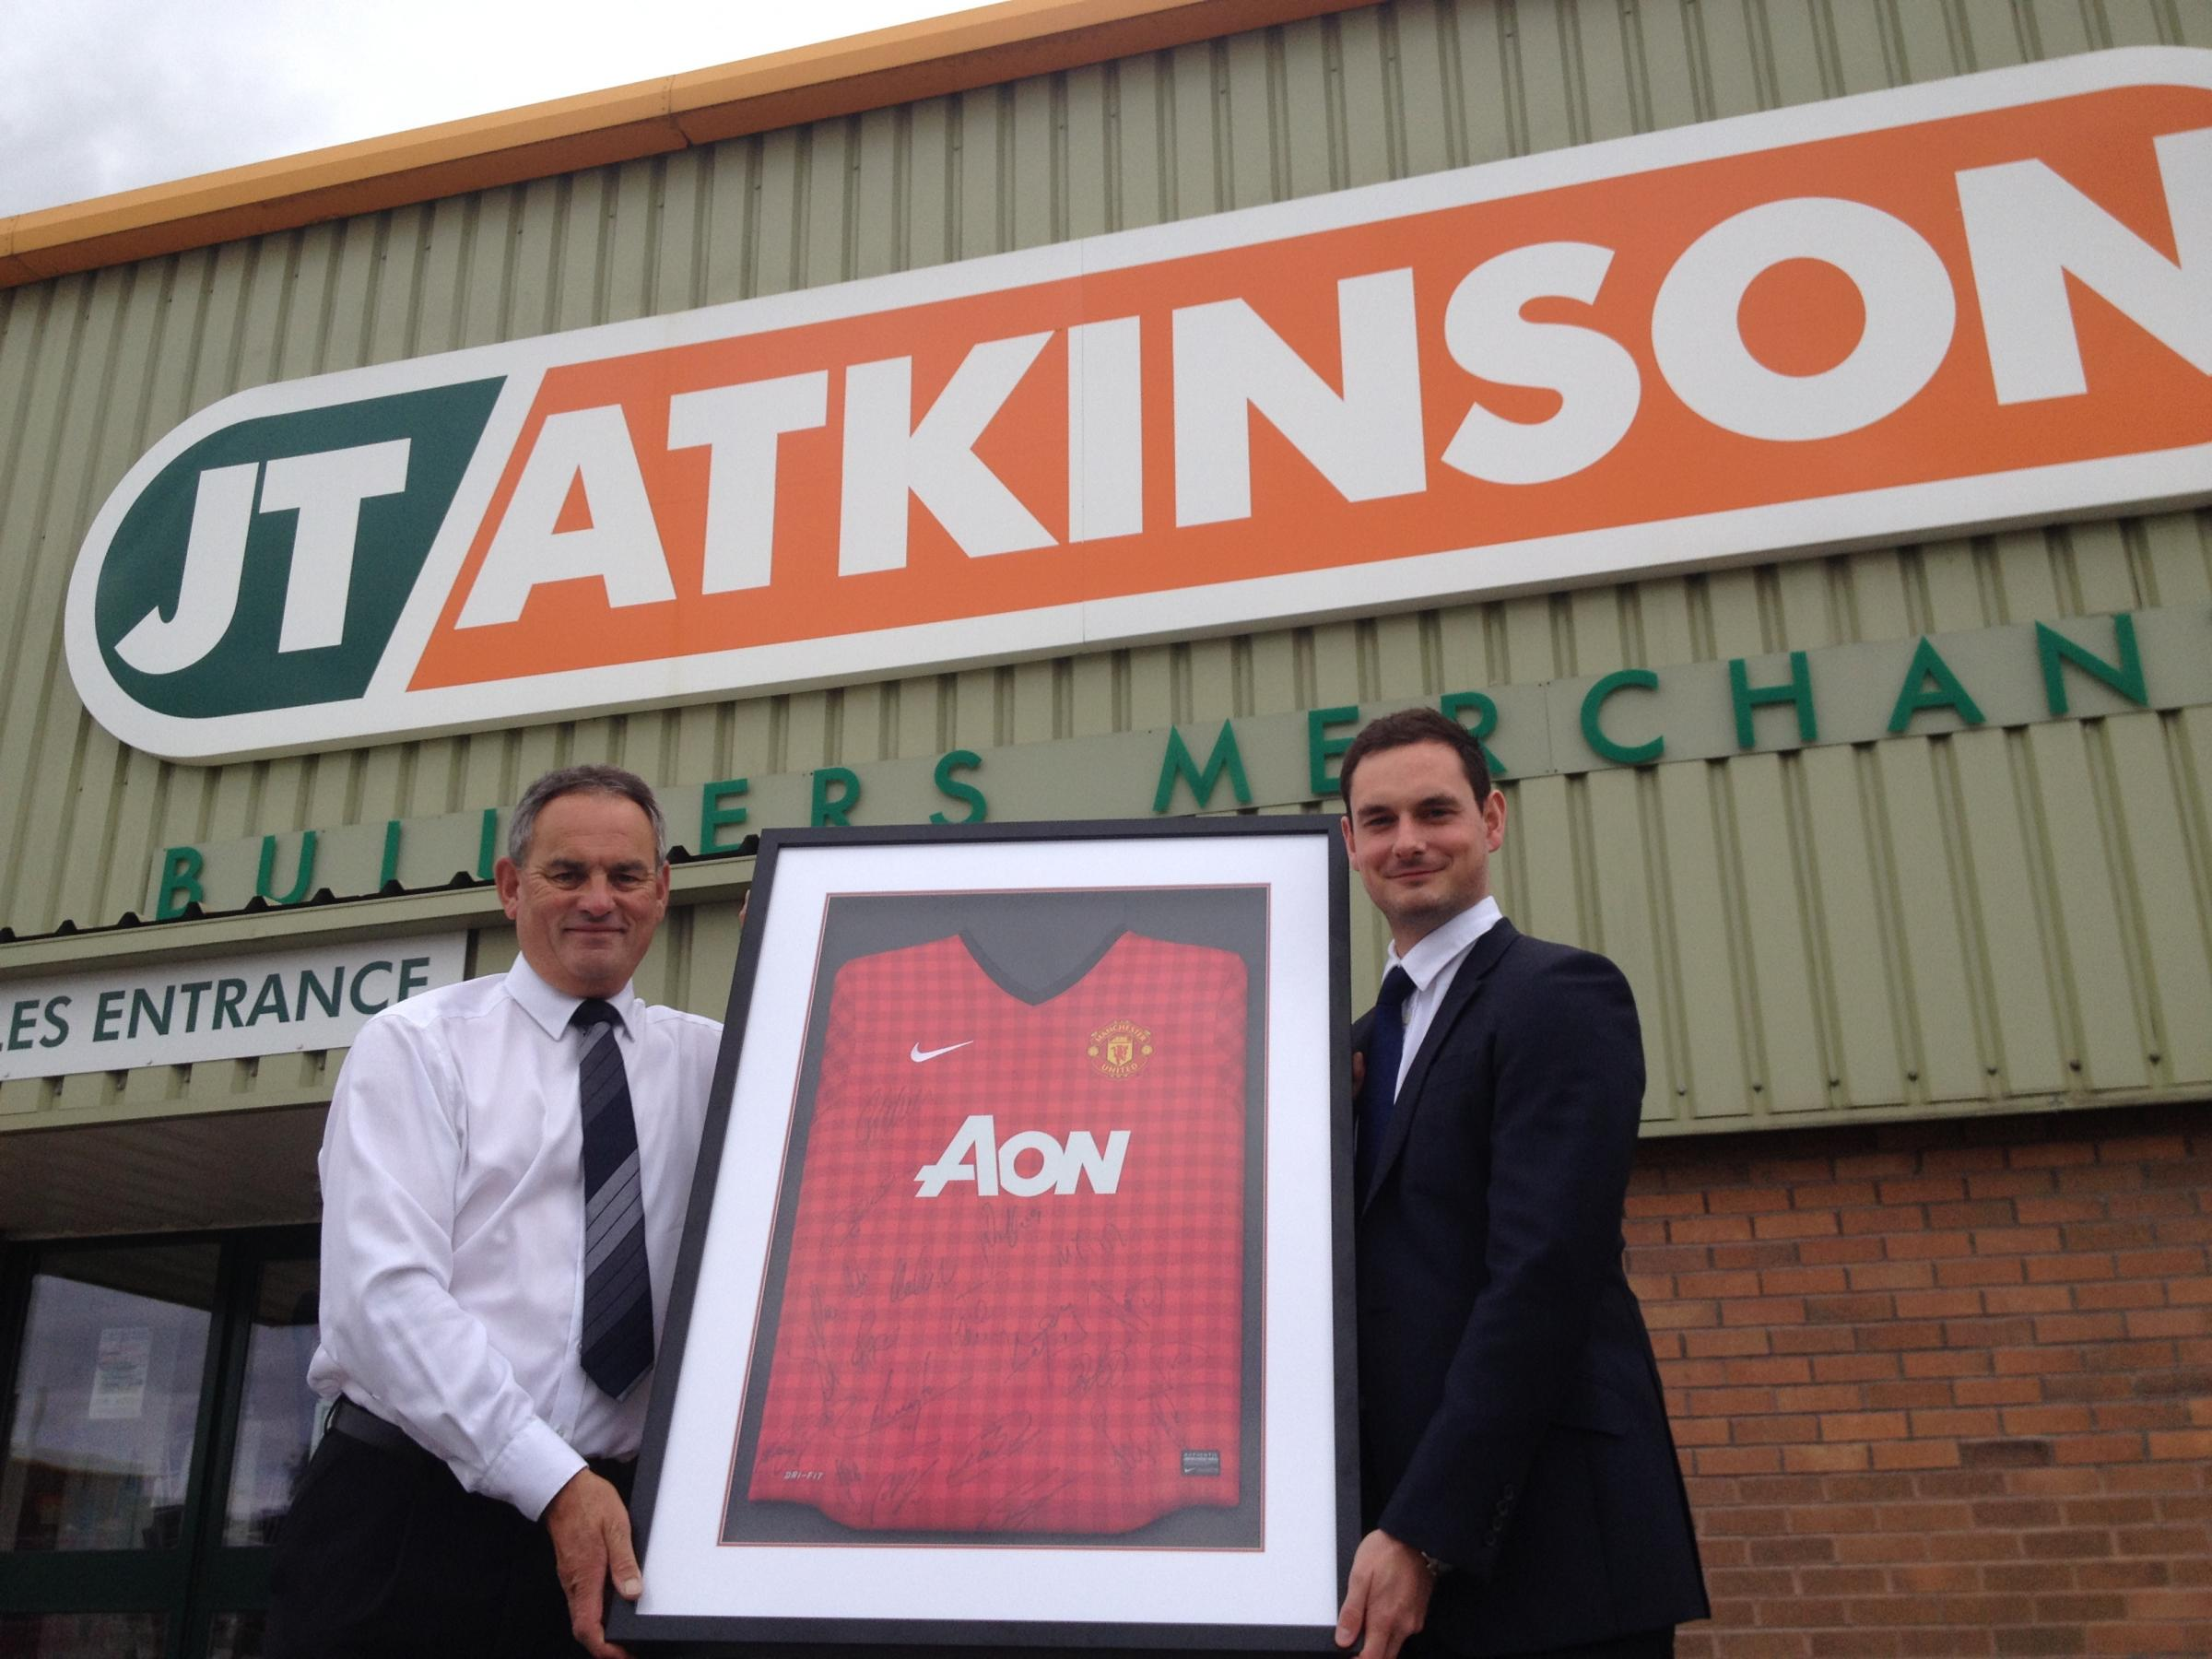 FUNDING GOAL: Jamie Atkinson, sales director of JT Atkinson hands over the Manchester United shirt to event co-organiser Peter Kirkbride